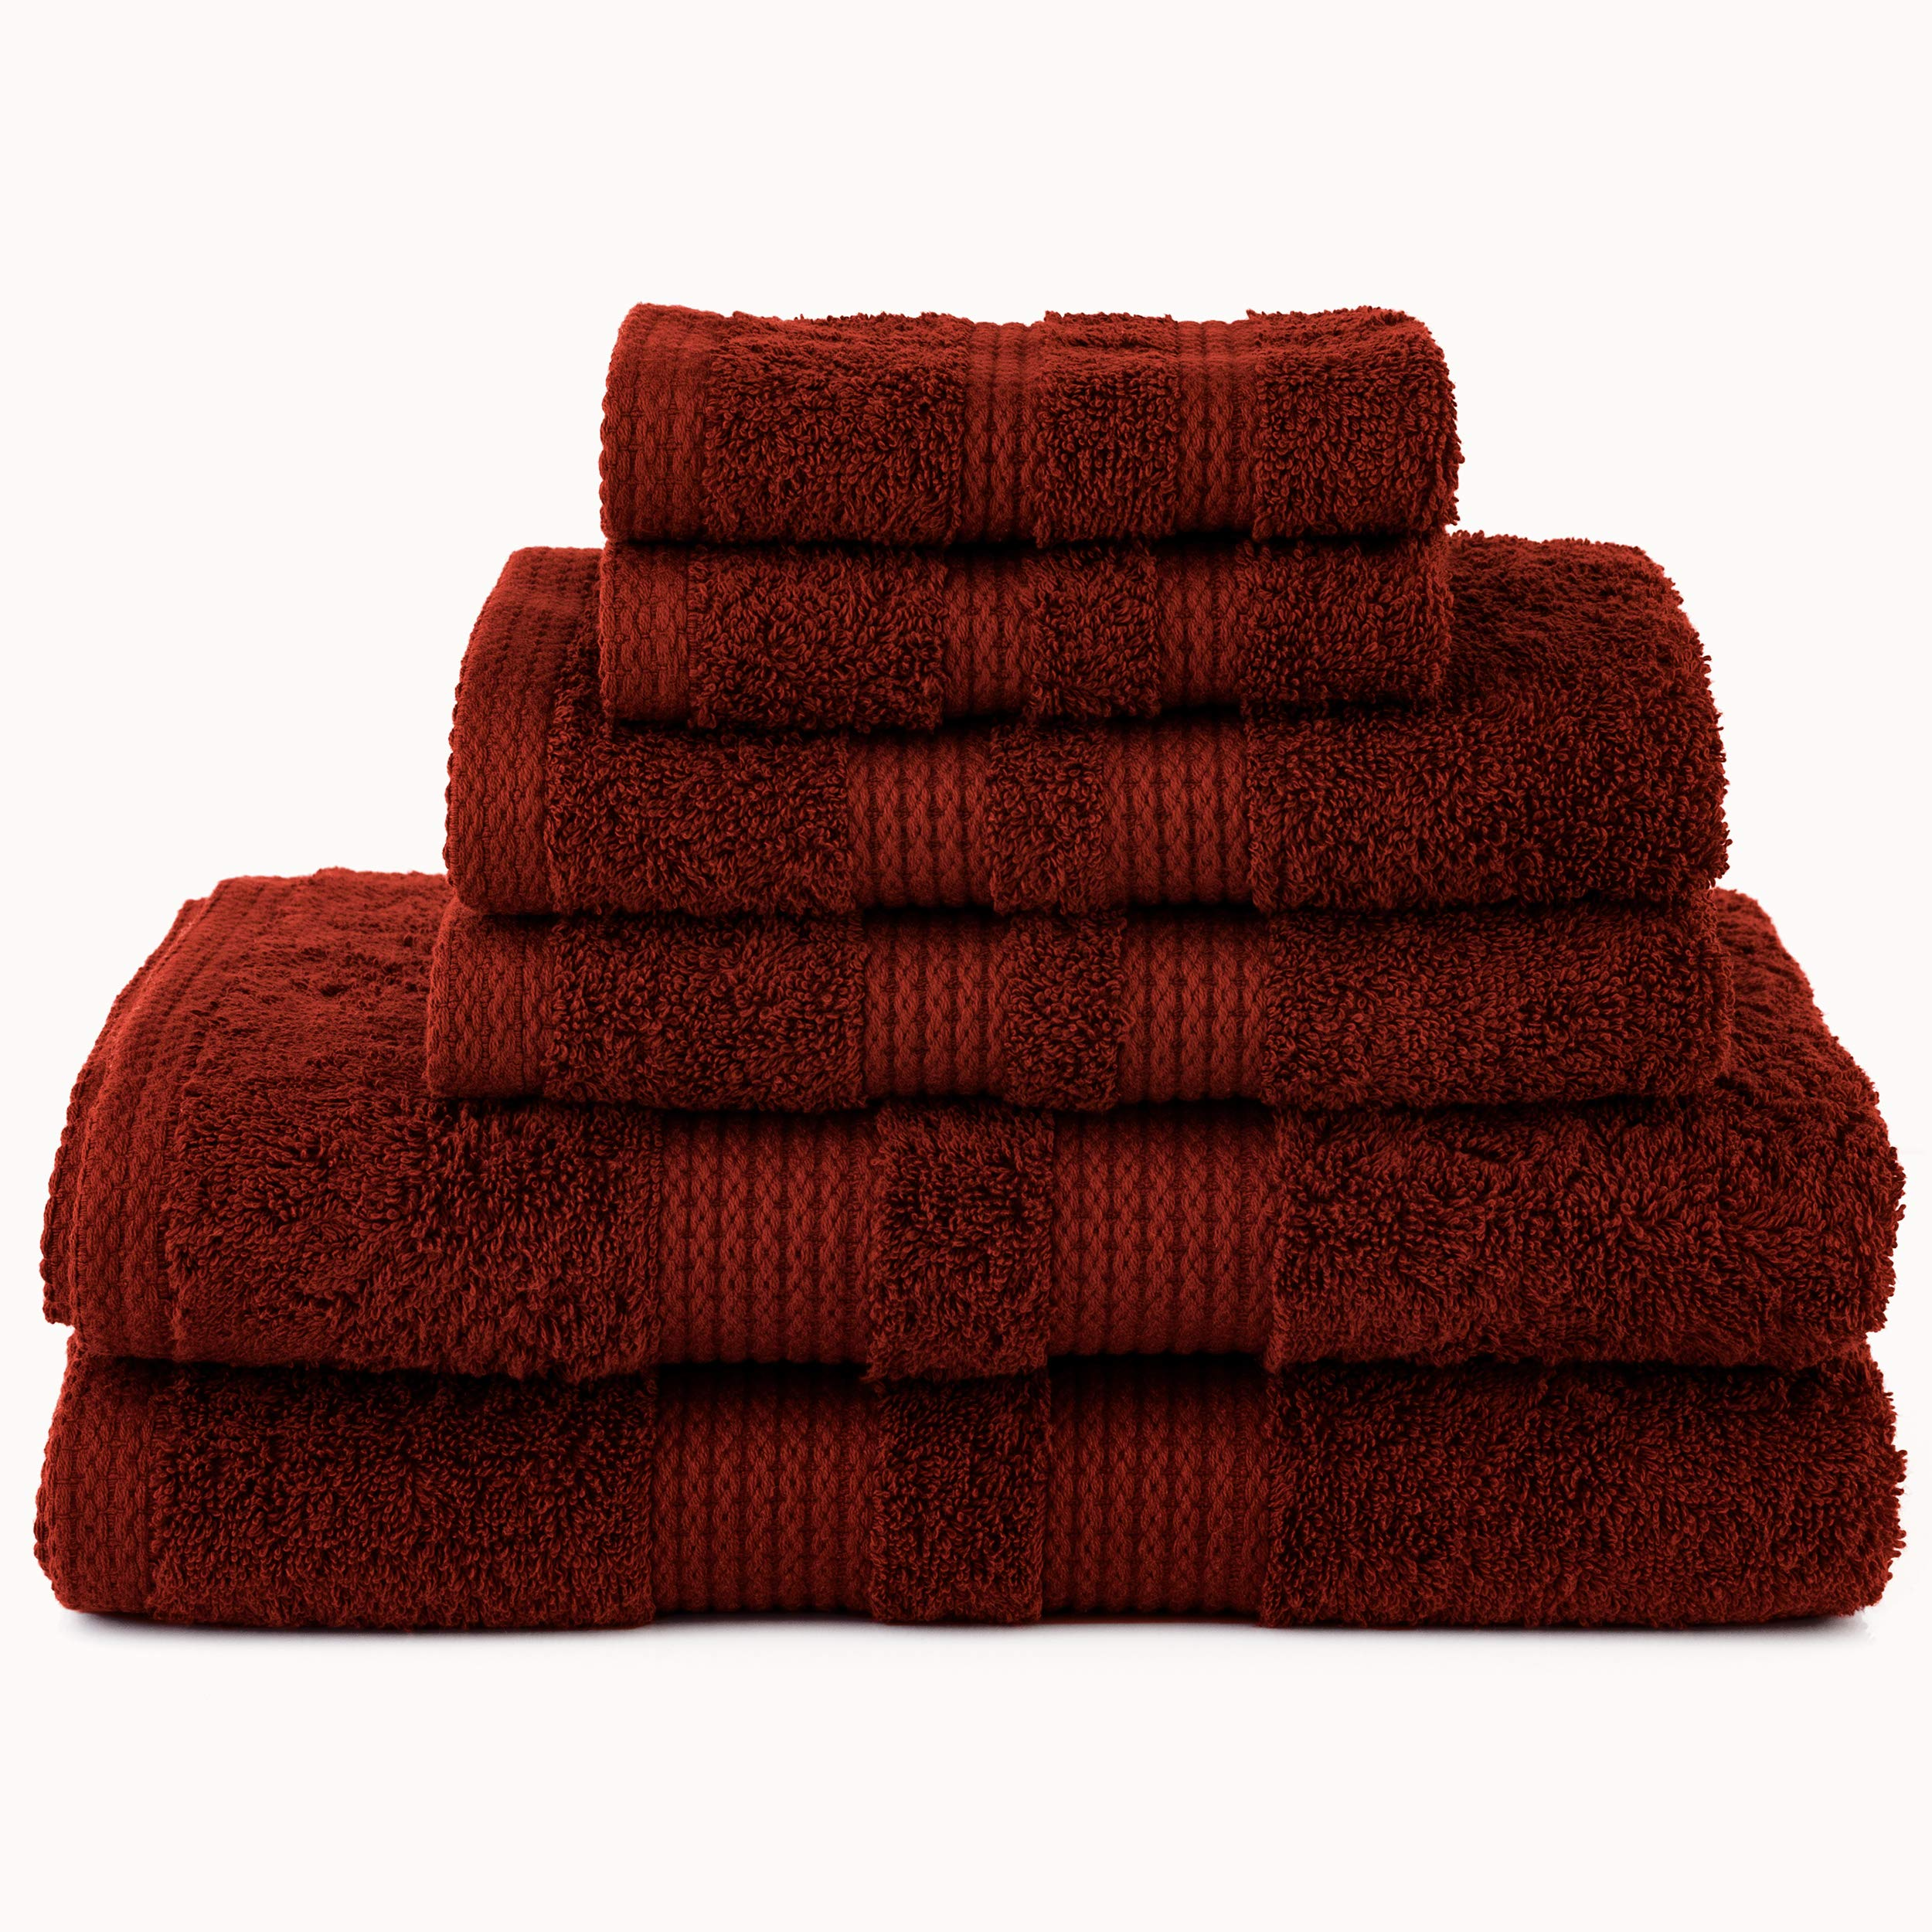 HomeCrate Duo 6 Piece Premium Towel Set, 600 GSM 100% Egyptian Cotton - Brick - Hotel Quality, Super Soft and Highly Absorbent